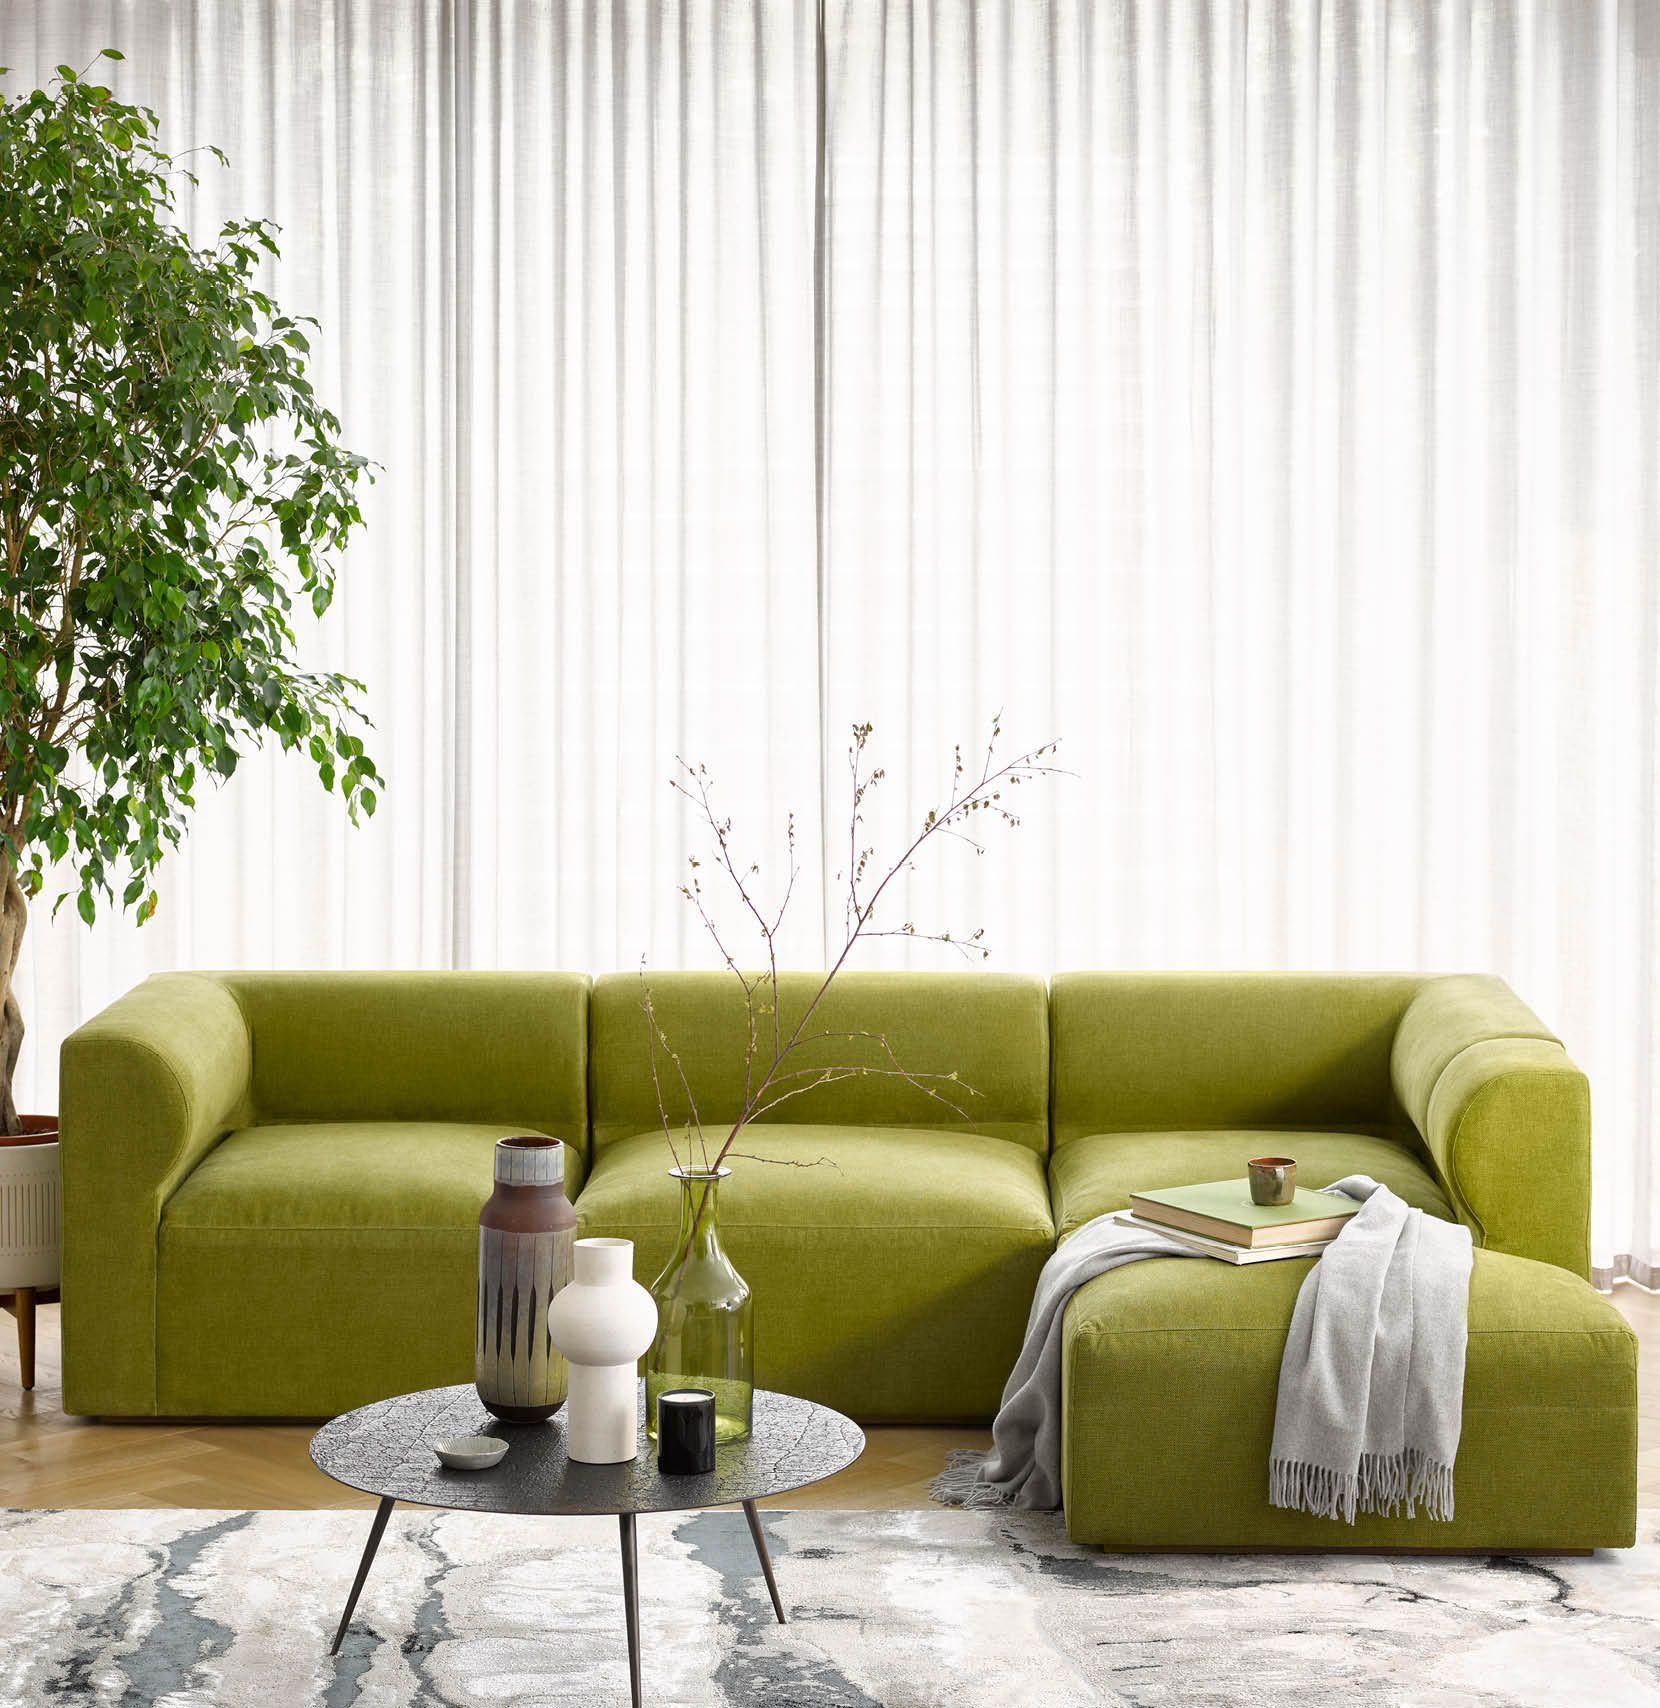 Cool cocooning - Cohen corner modular sofa in a moss green fabric, styled in a contemporary interior space